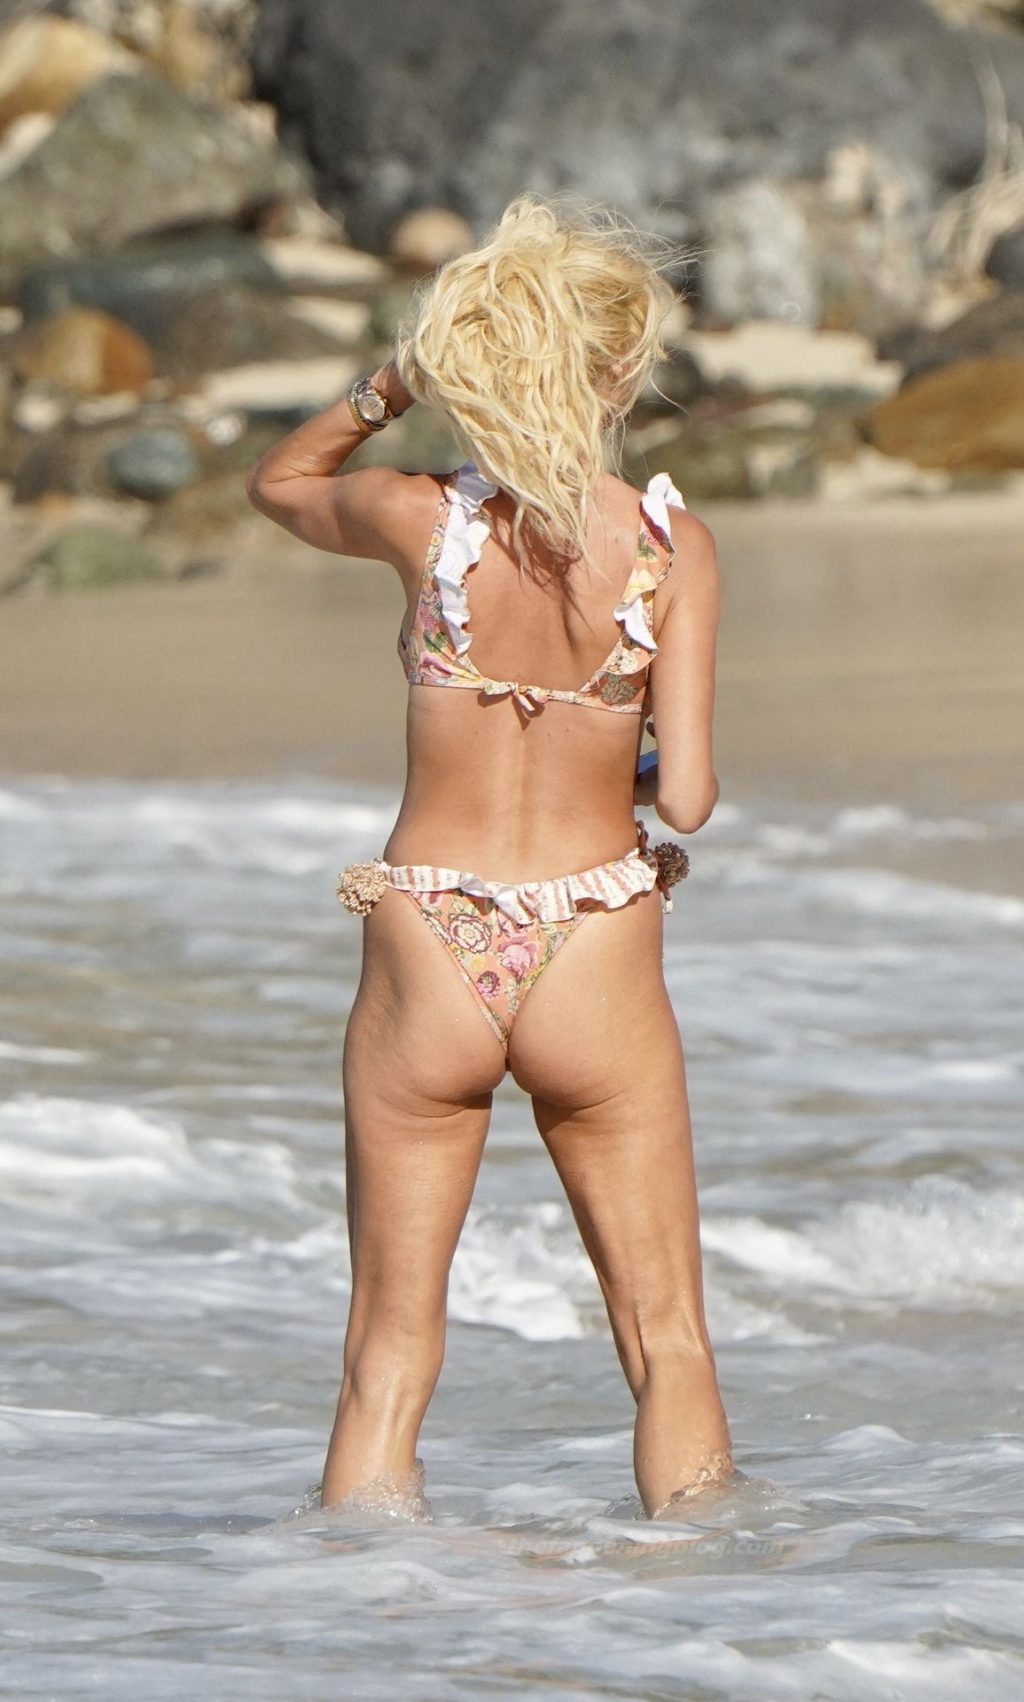 Victoria Silvstedt Shows Off Her Fake Boobs in a Bikini (40 Photos)